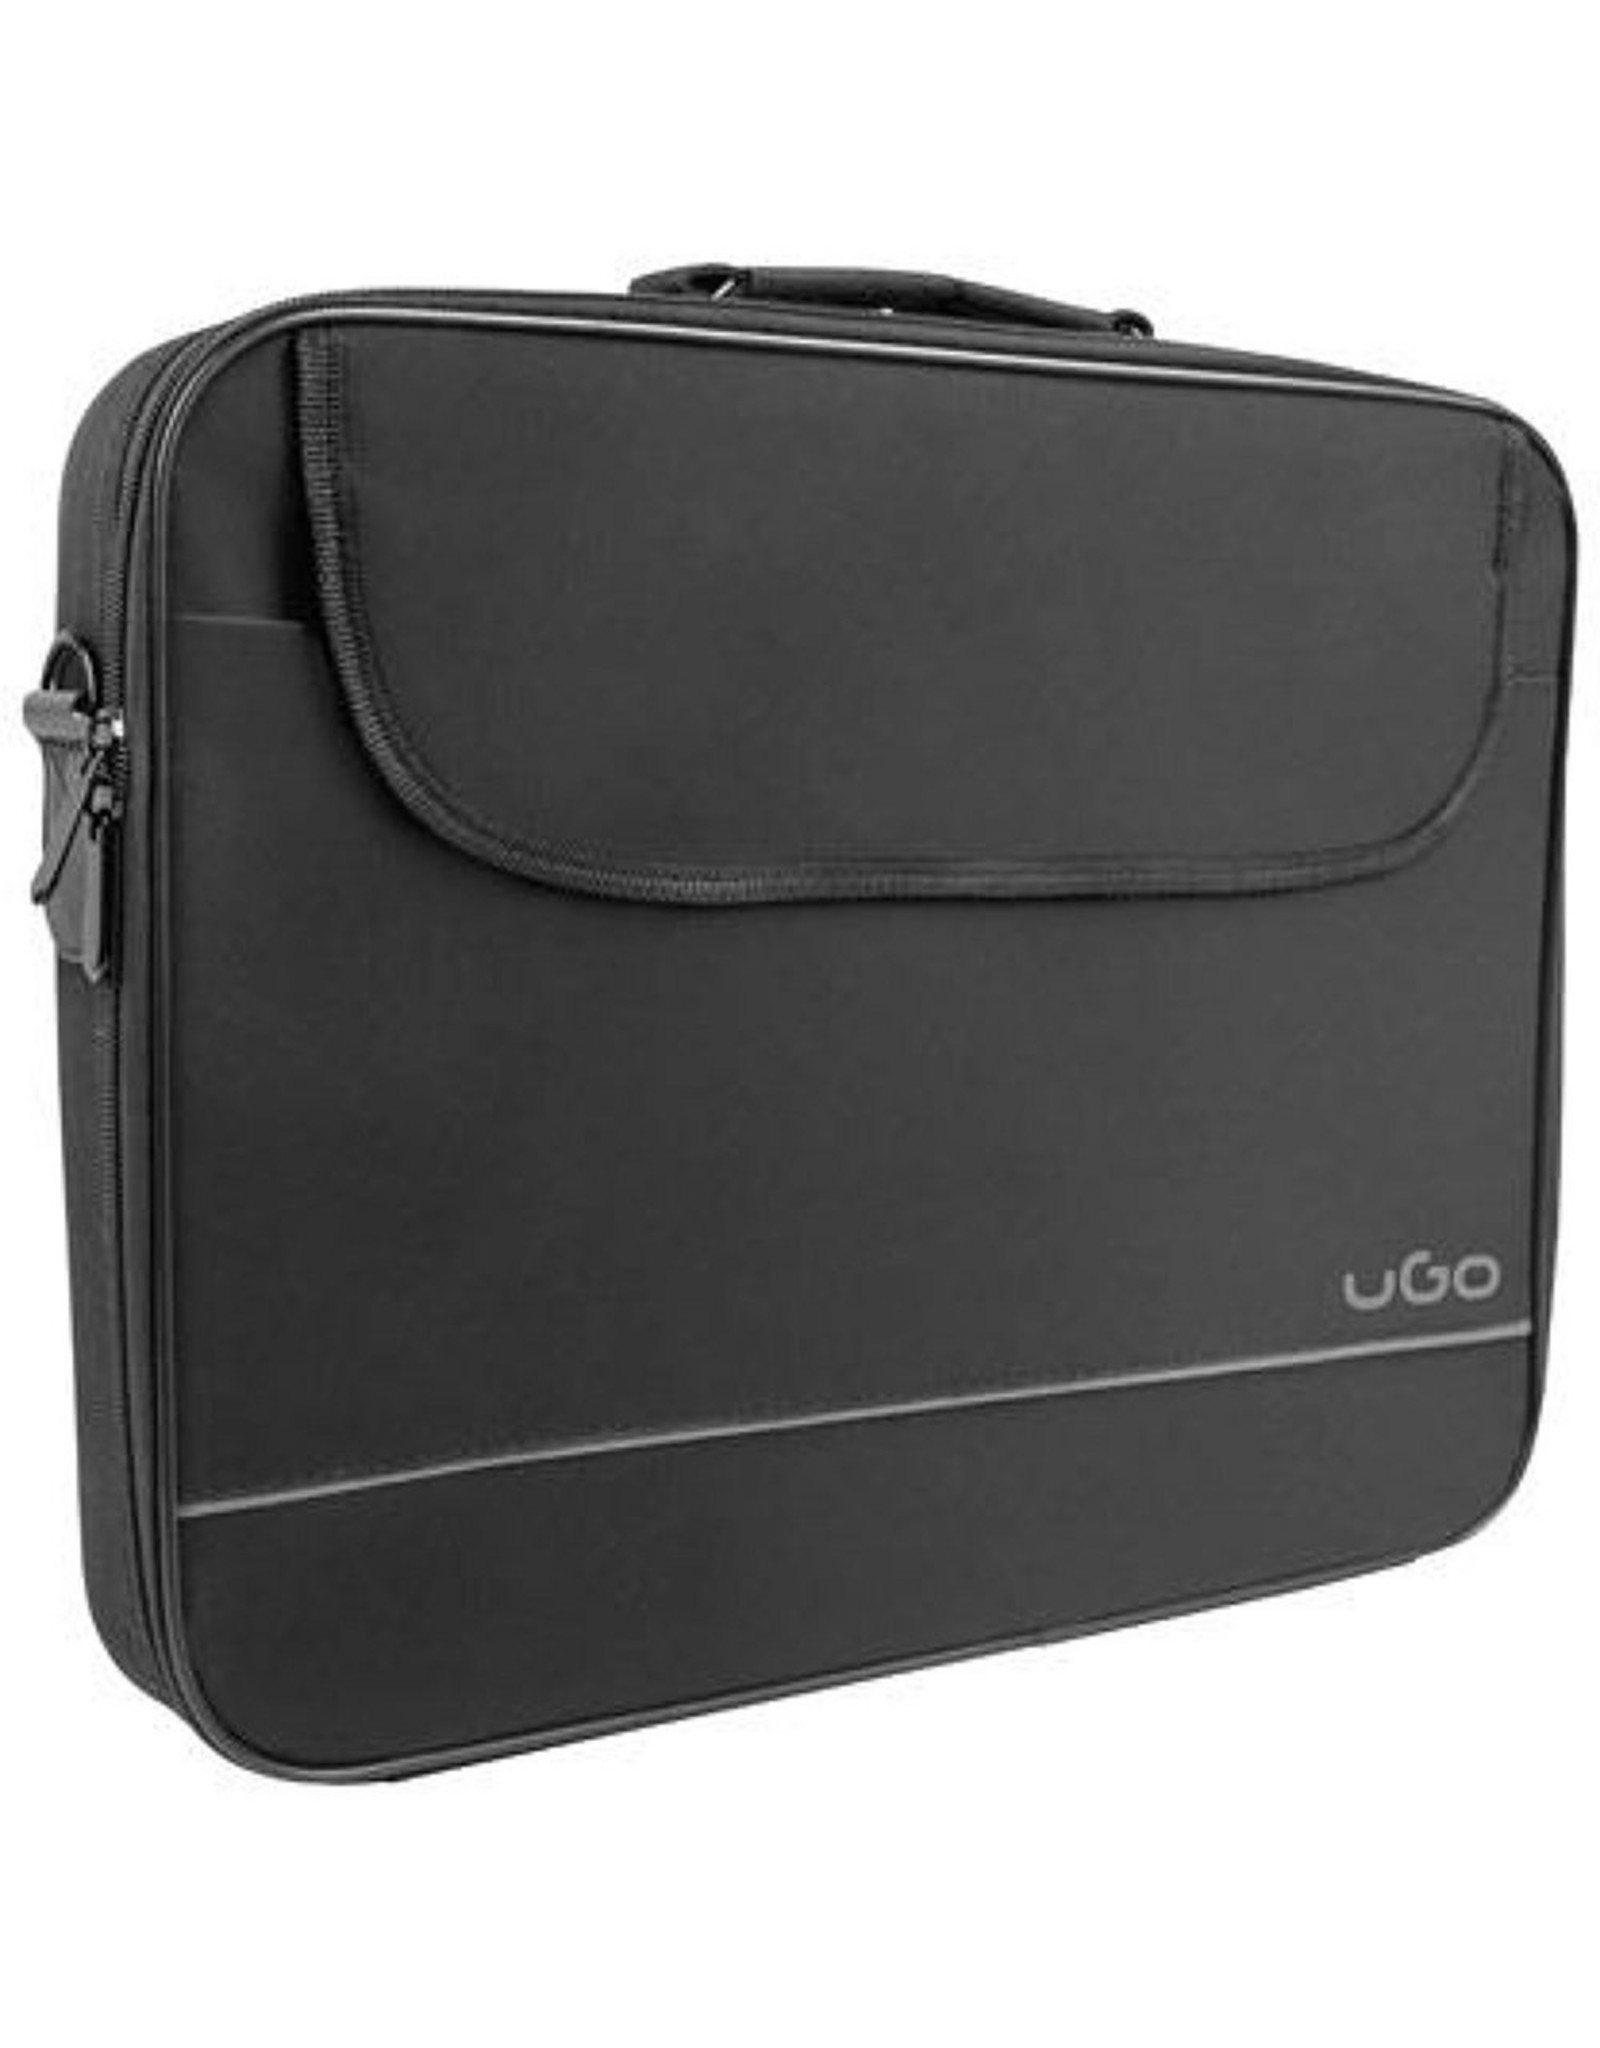 OEM UGO notebook bag KATLA BH100 15.6inch Black